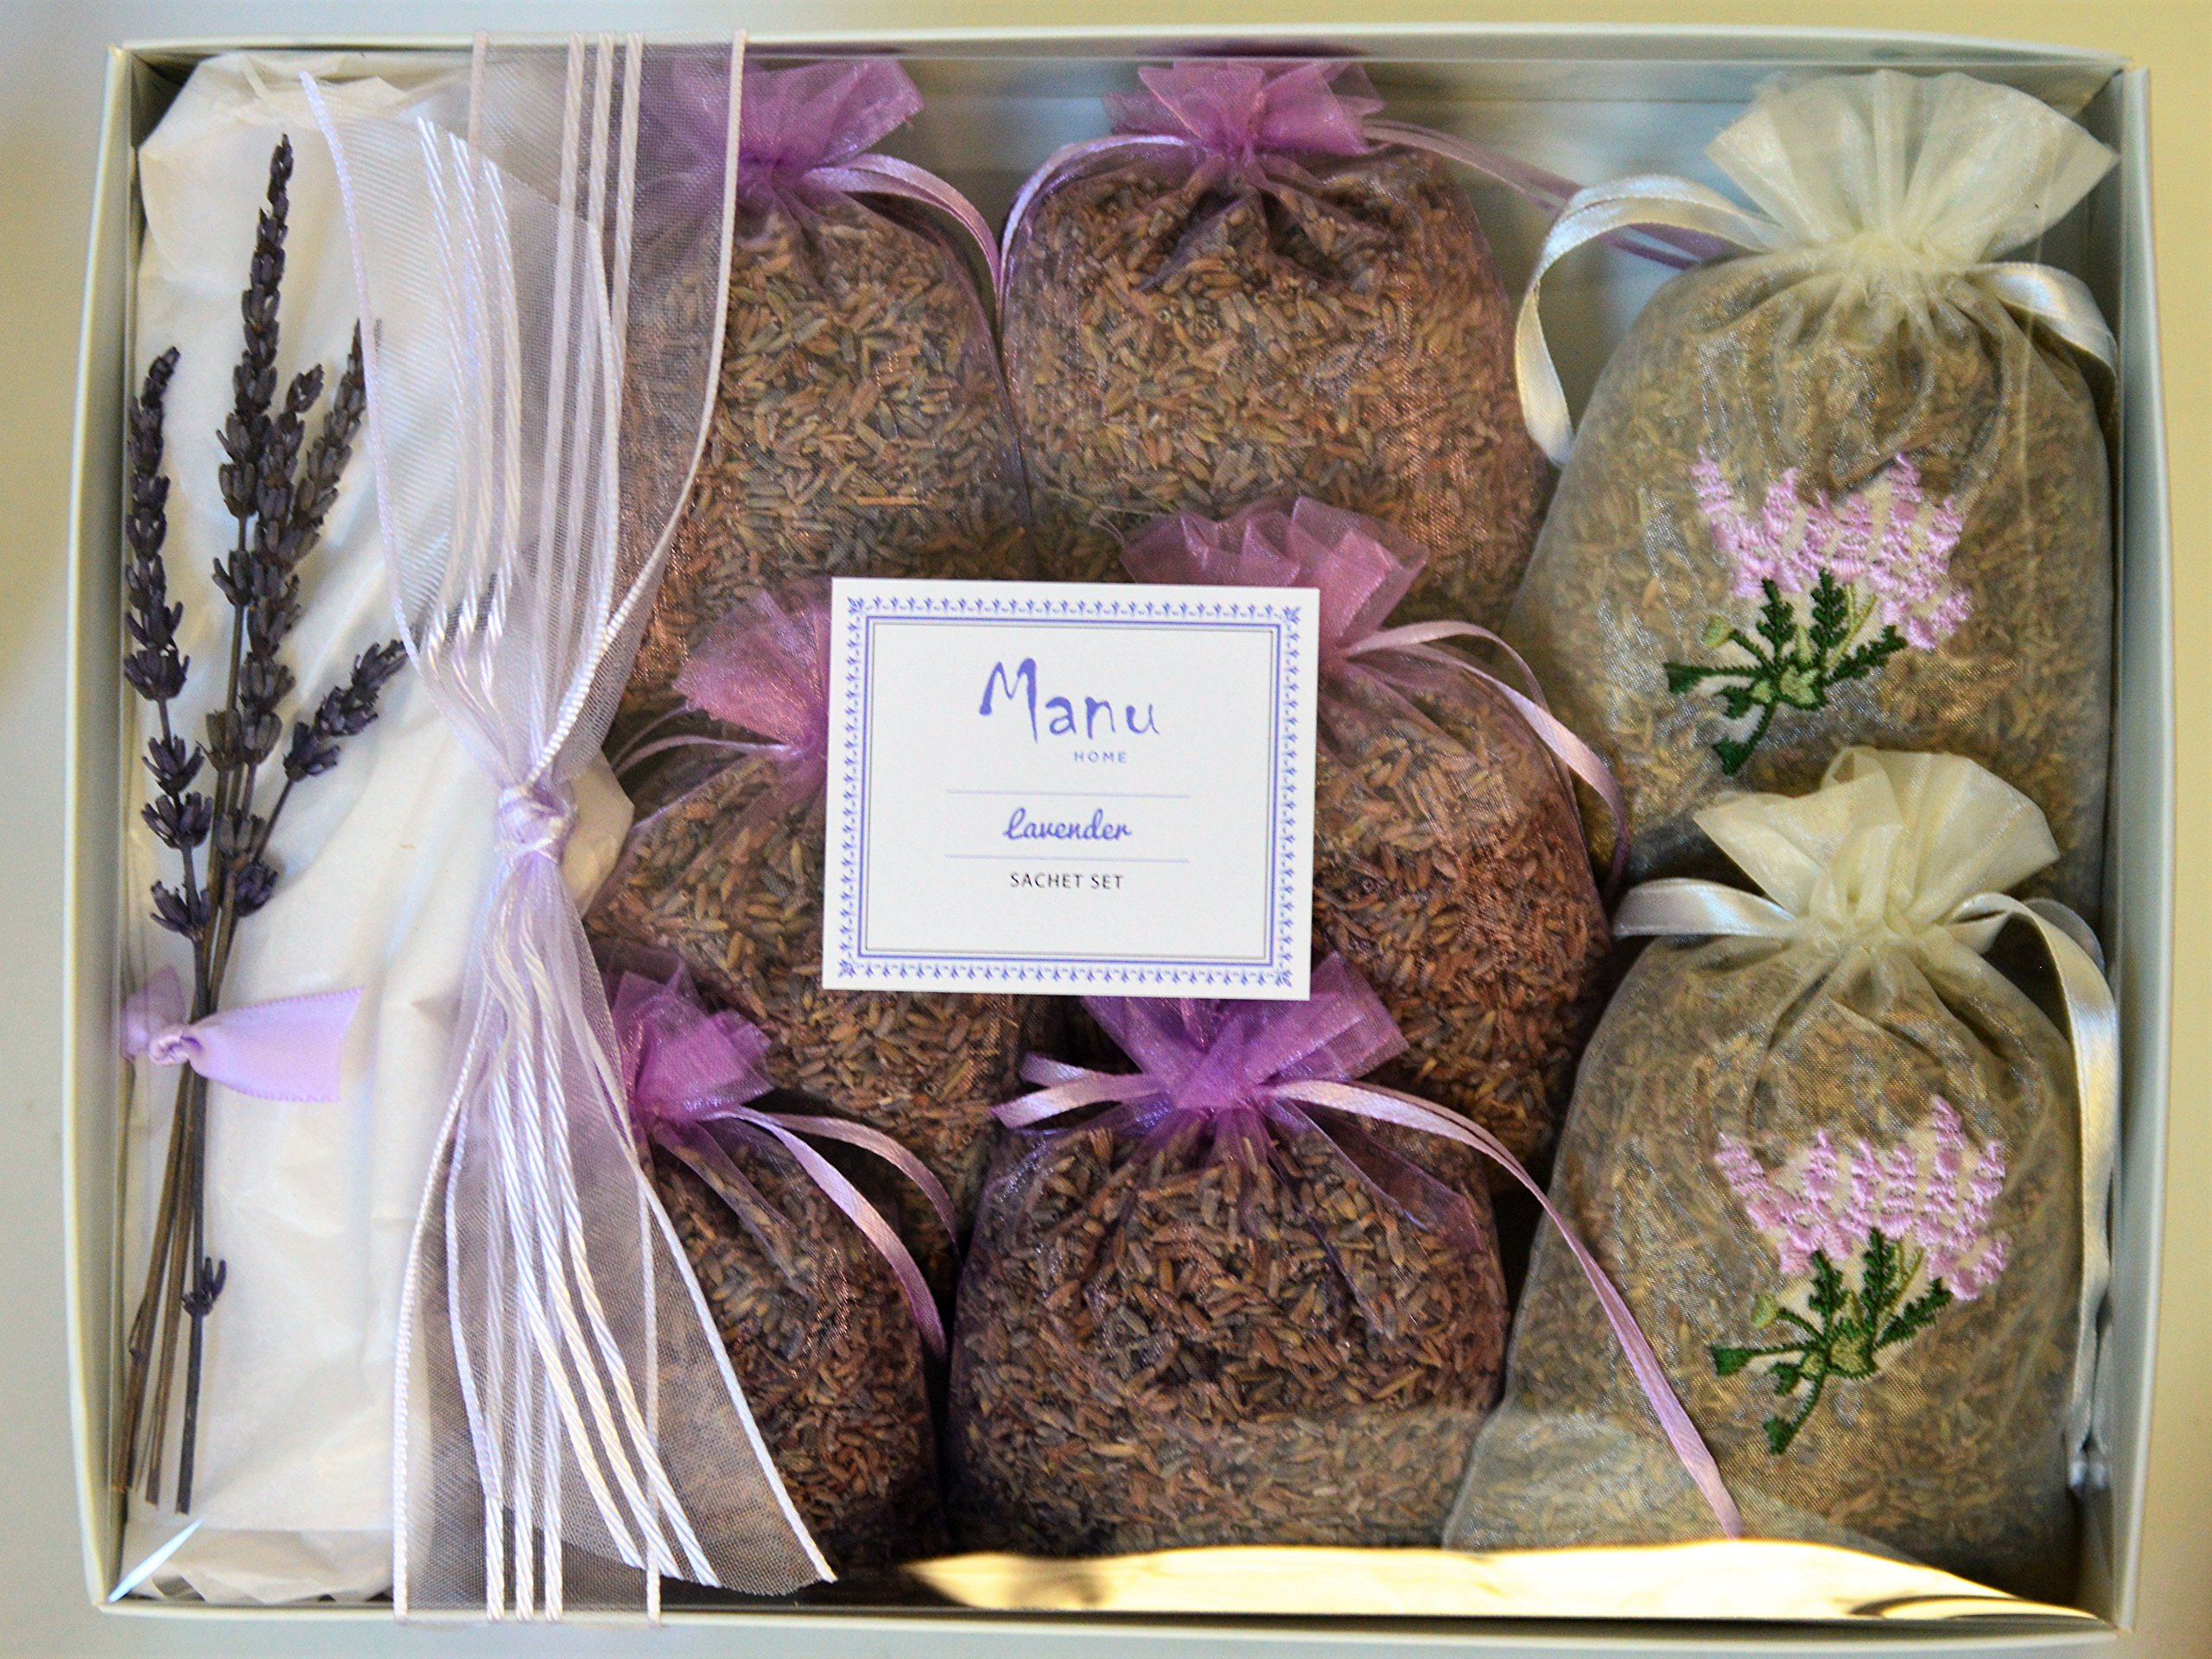 Manu Home Lavender Sachets ~ Lavender Stems & buds from Provence in beautiful organza pouches~ Perfect for Home Fragrance, Natural Deodorizer, Moth Repellent and to refreshen clothes~ Made in USA!